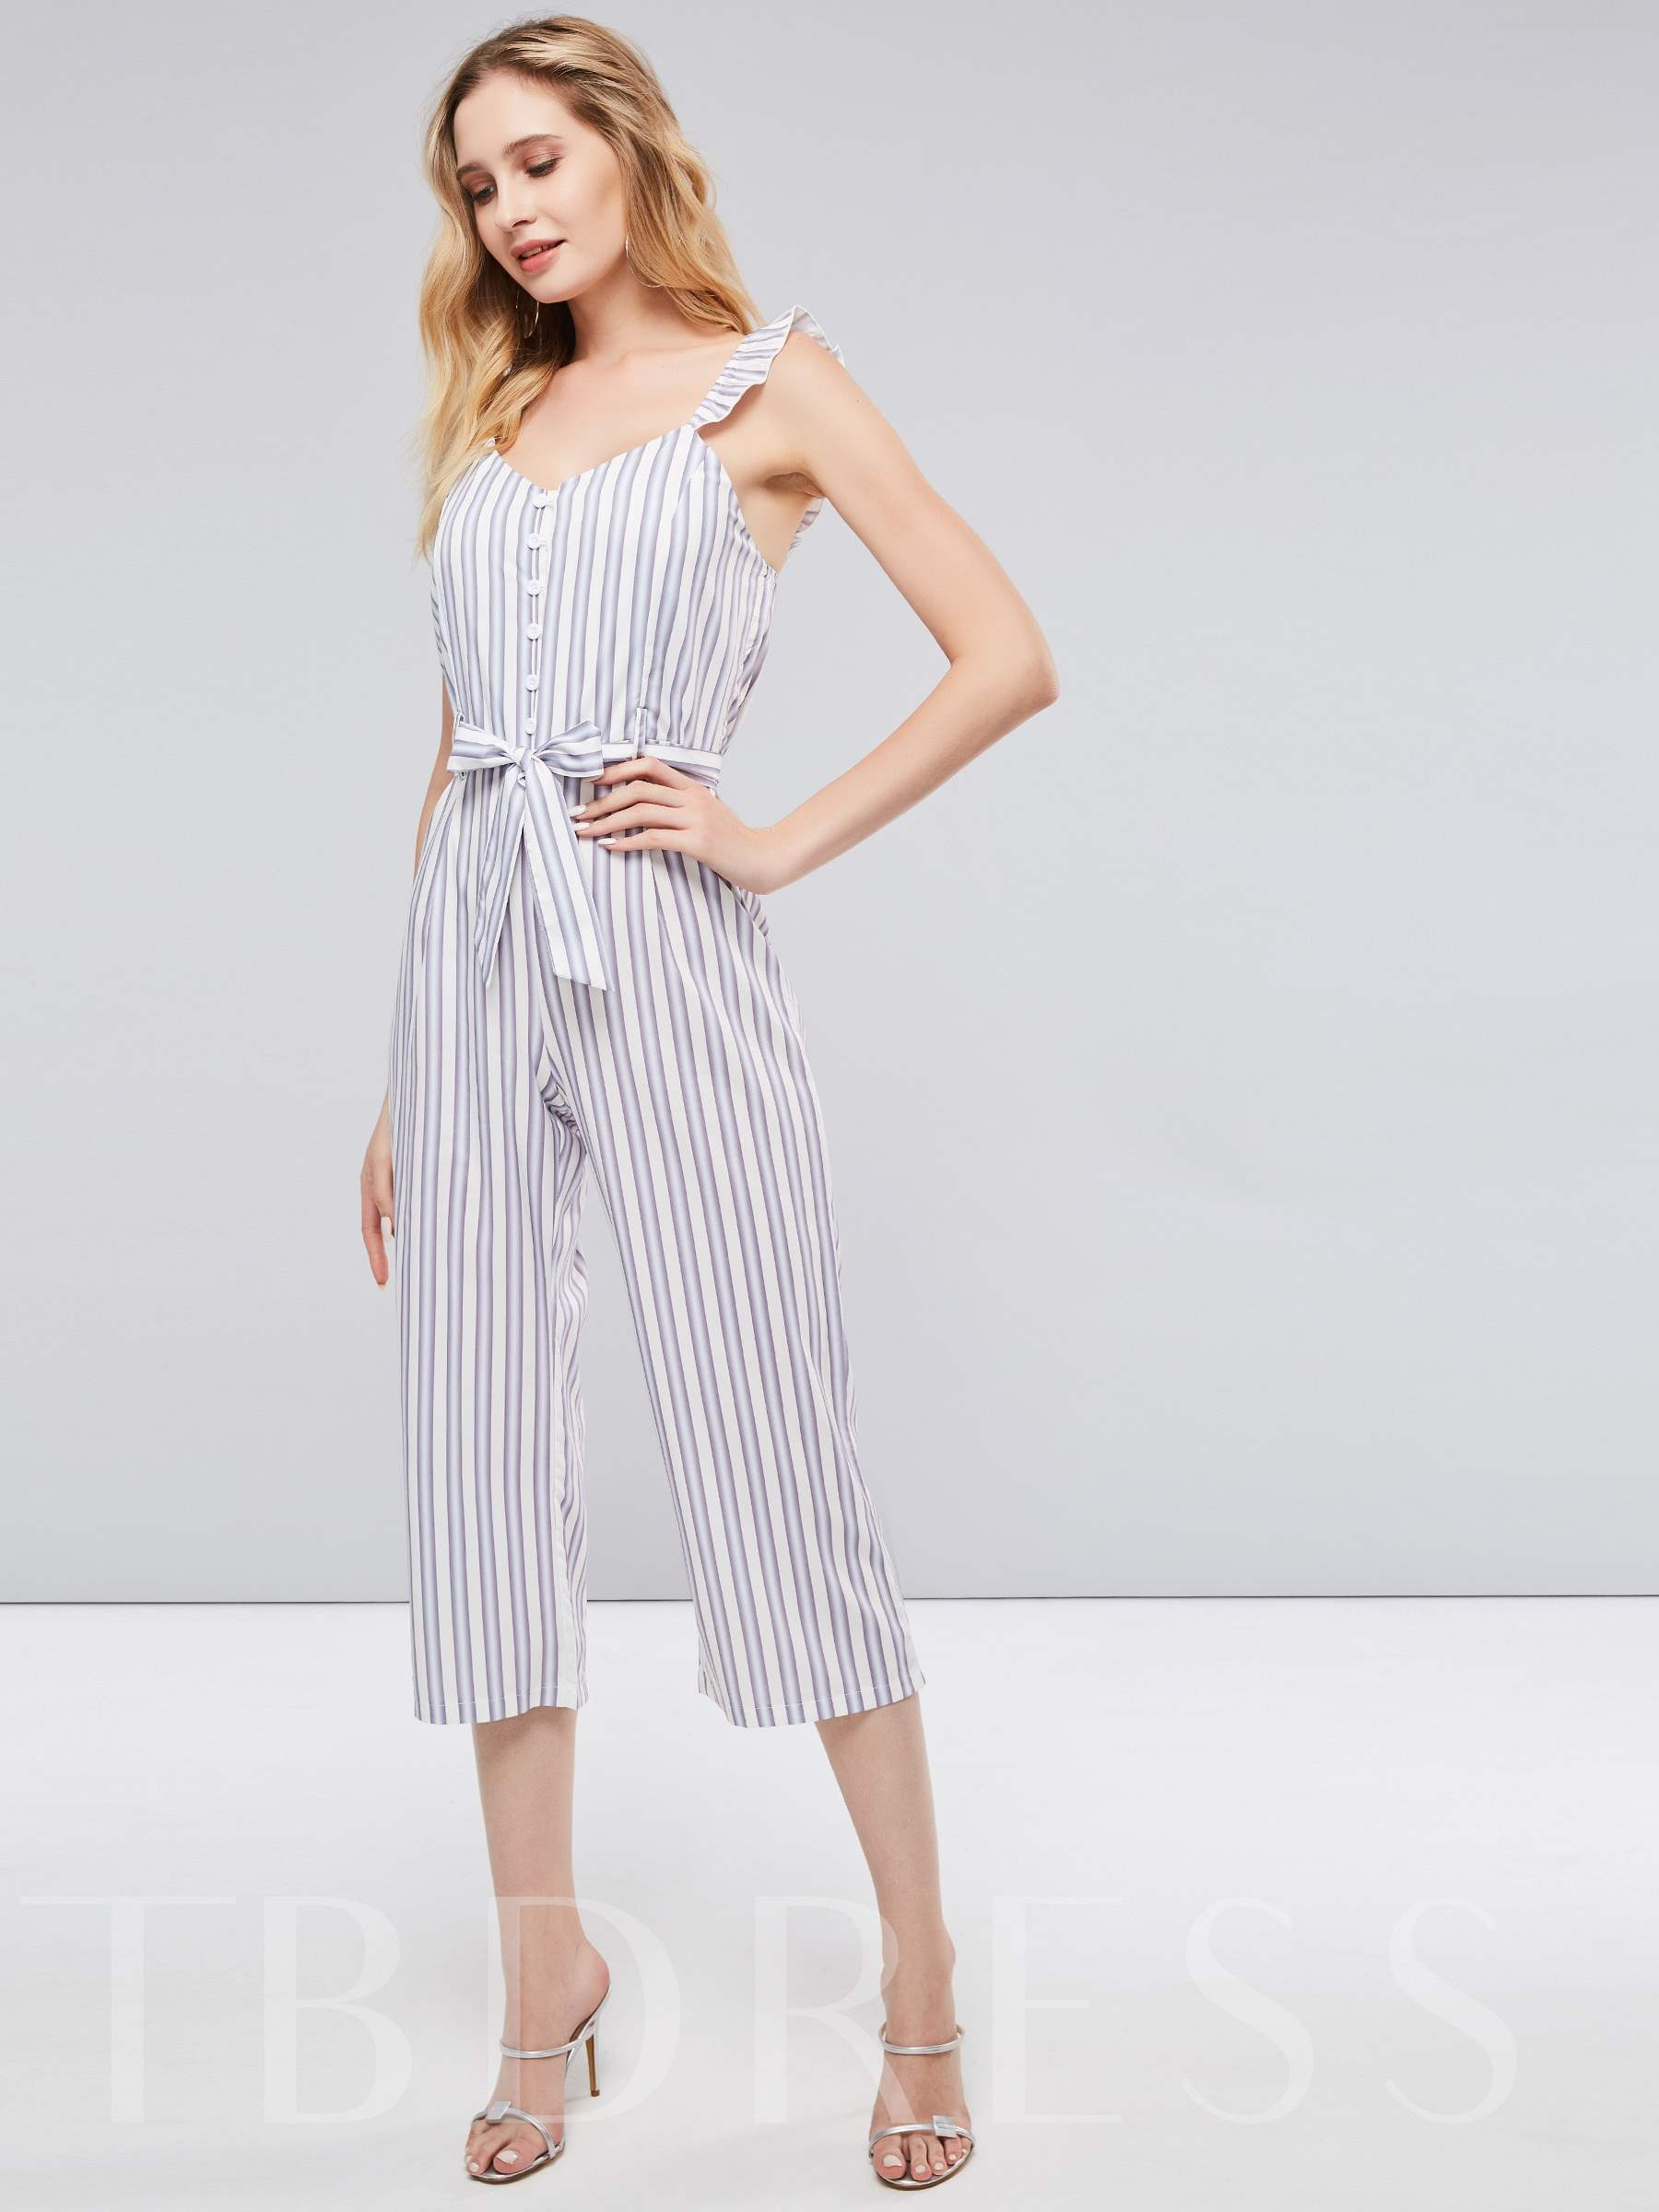 Buy Ruffled Striped Color Block Women's Jumpsuit, 13414061 for $10.20 in TBDress store